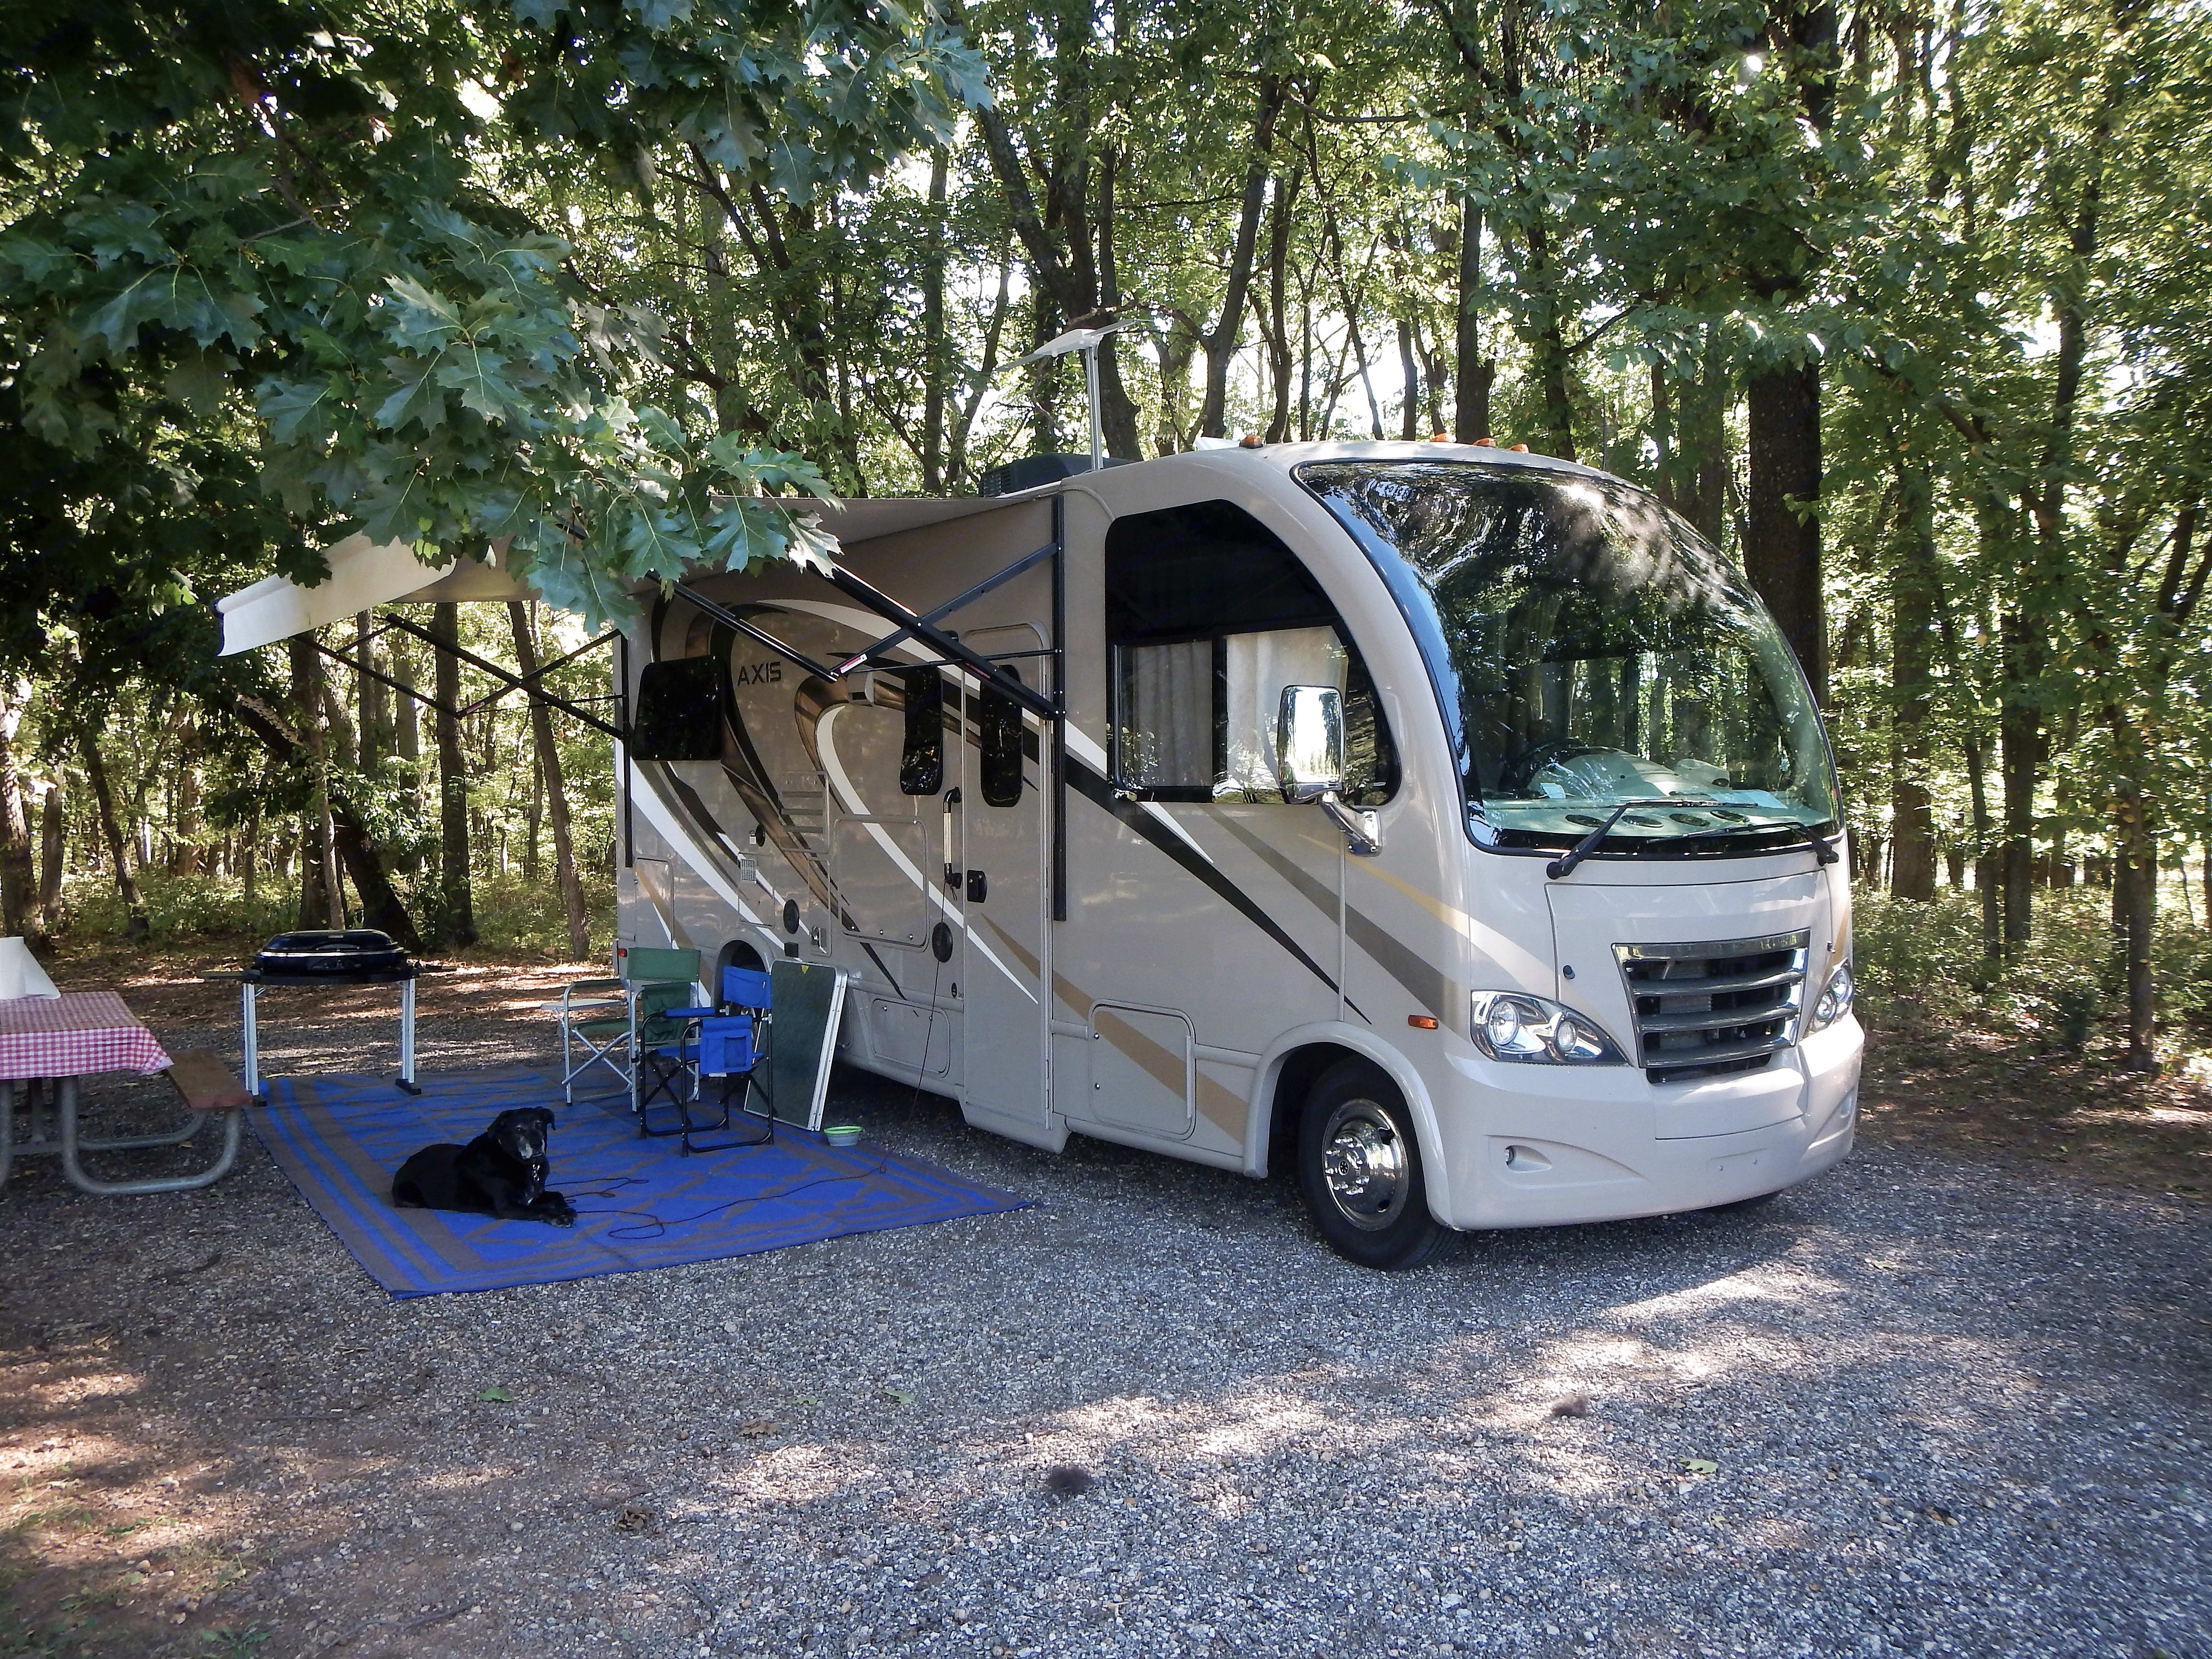 Included in rental 4 camp chairs, folding table, outdoor rug. Oscar the dog not included. Thor Motor Coach Axis 2016